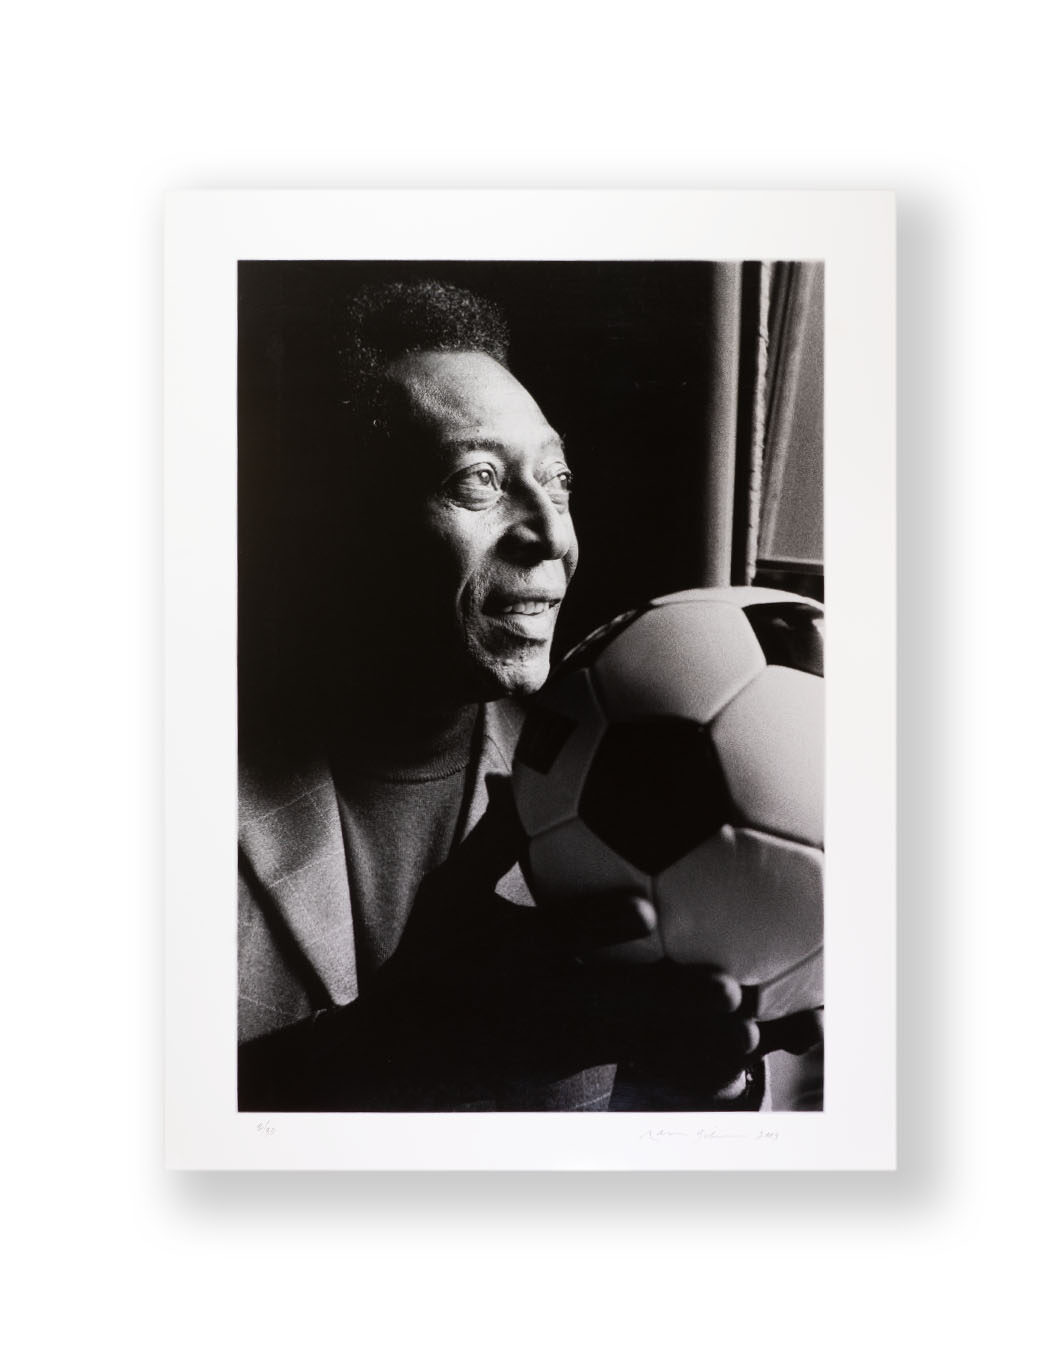 Pele FIFA 100 Footballers Exhibition Photograph Hand Signed by Pele